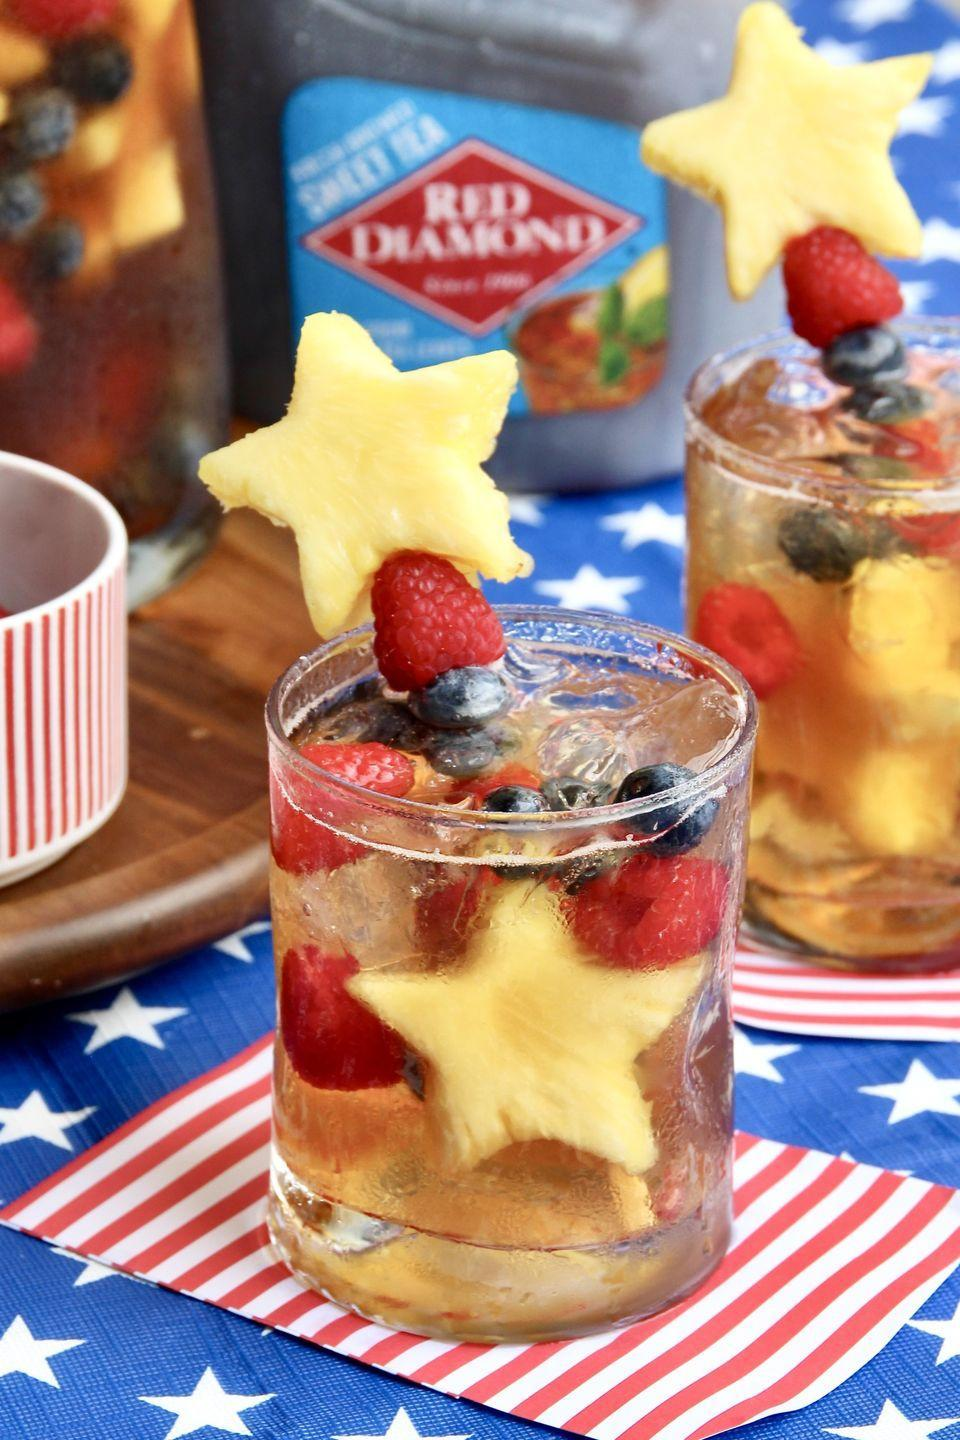 """<p>Sweet tea gets an adult-friendly upgrade, thanks to orange liqueur and sparkling wine. Festive fruit kebabs make the beverage perfect for your Fourth of July crowd, too. </p><p>Get the recipe at <a href=""""https://thebakermama.com/recipes/sparkling-sweet-tea-sangria/"""" rel=""""nofollow noopener"""" target=""""_blank"""" data-ylk=""""slk:The Baker Mama"""" class=""""link rapid-noclick-resp"""">The Baker Mama</a>. </p>"""